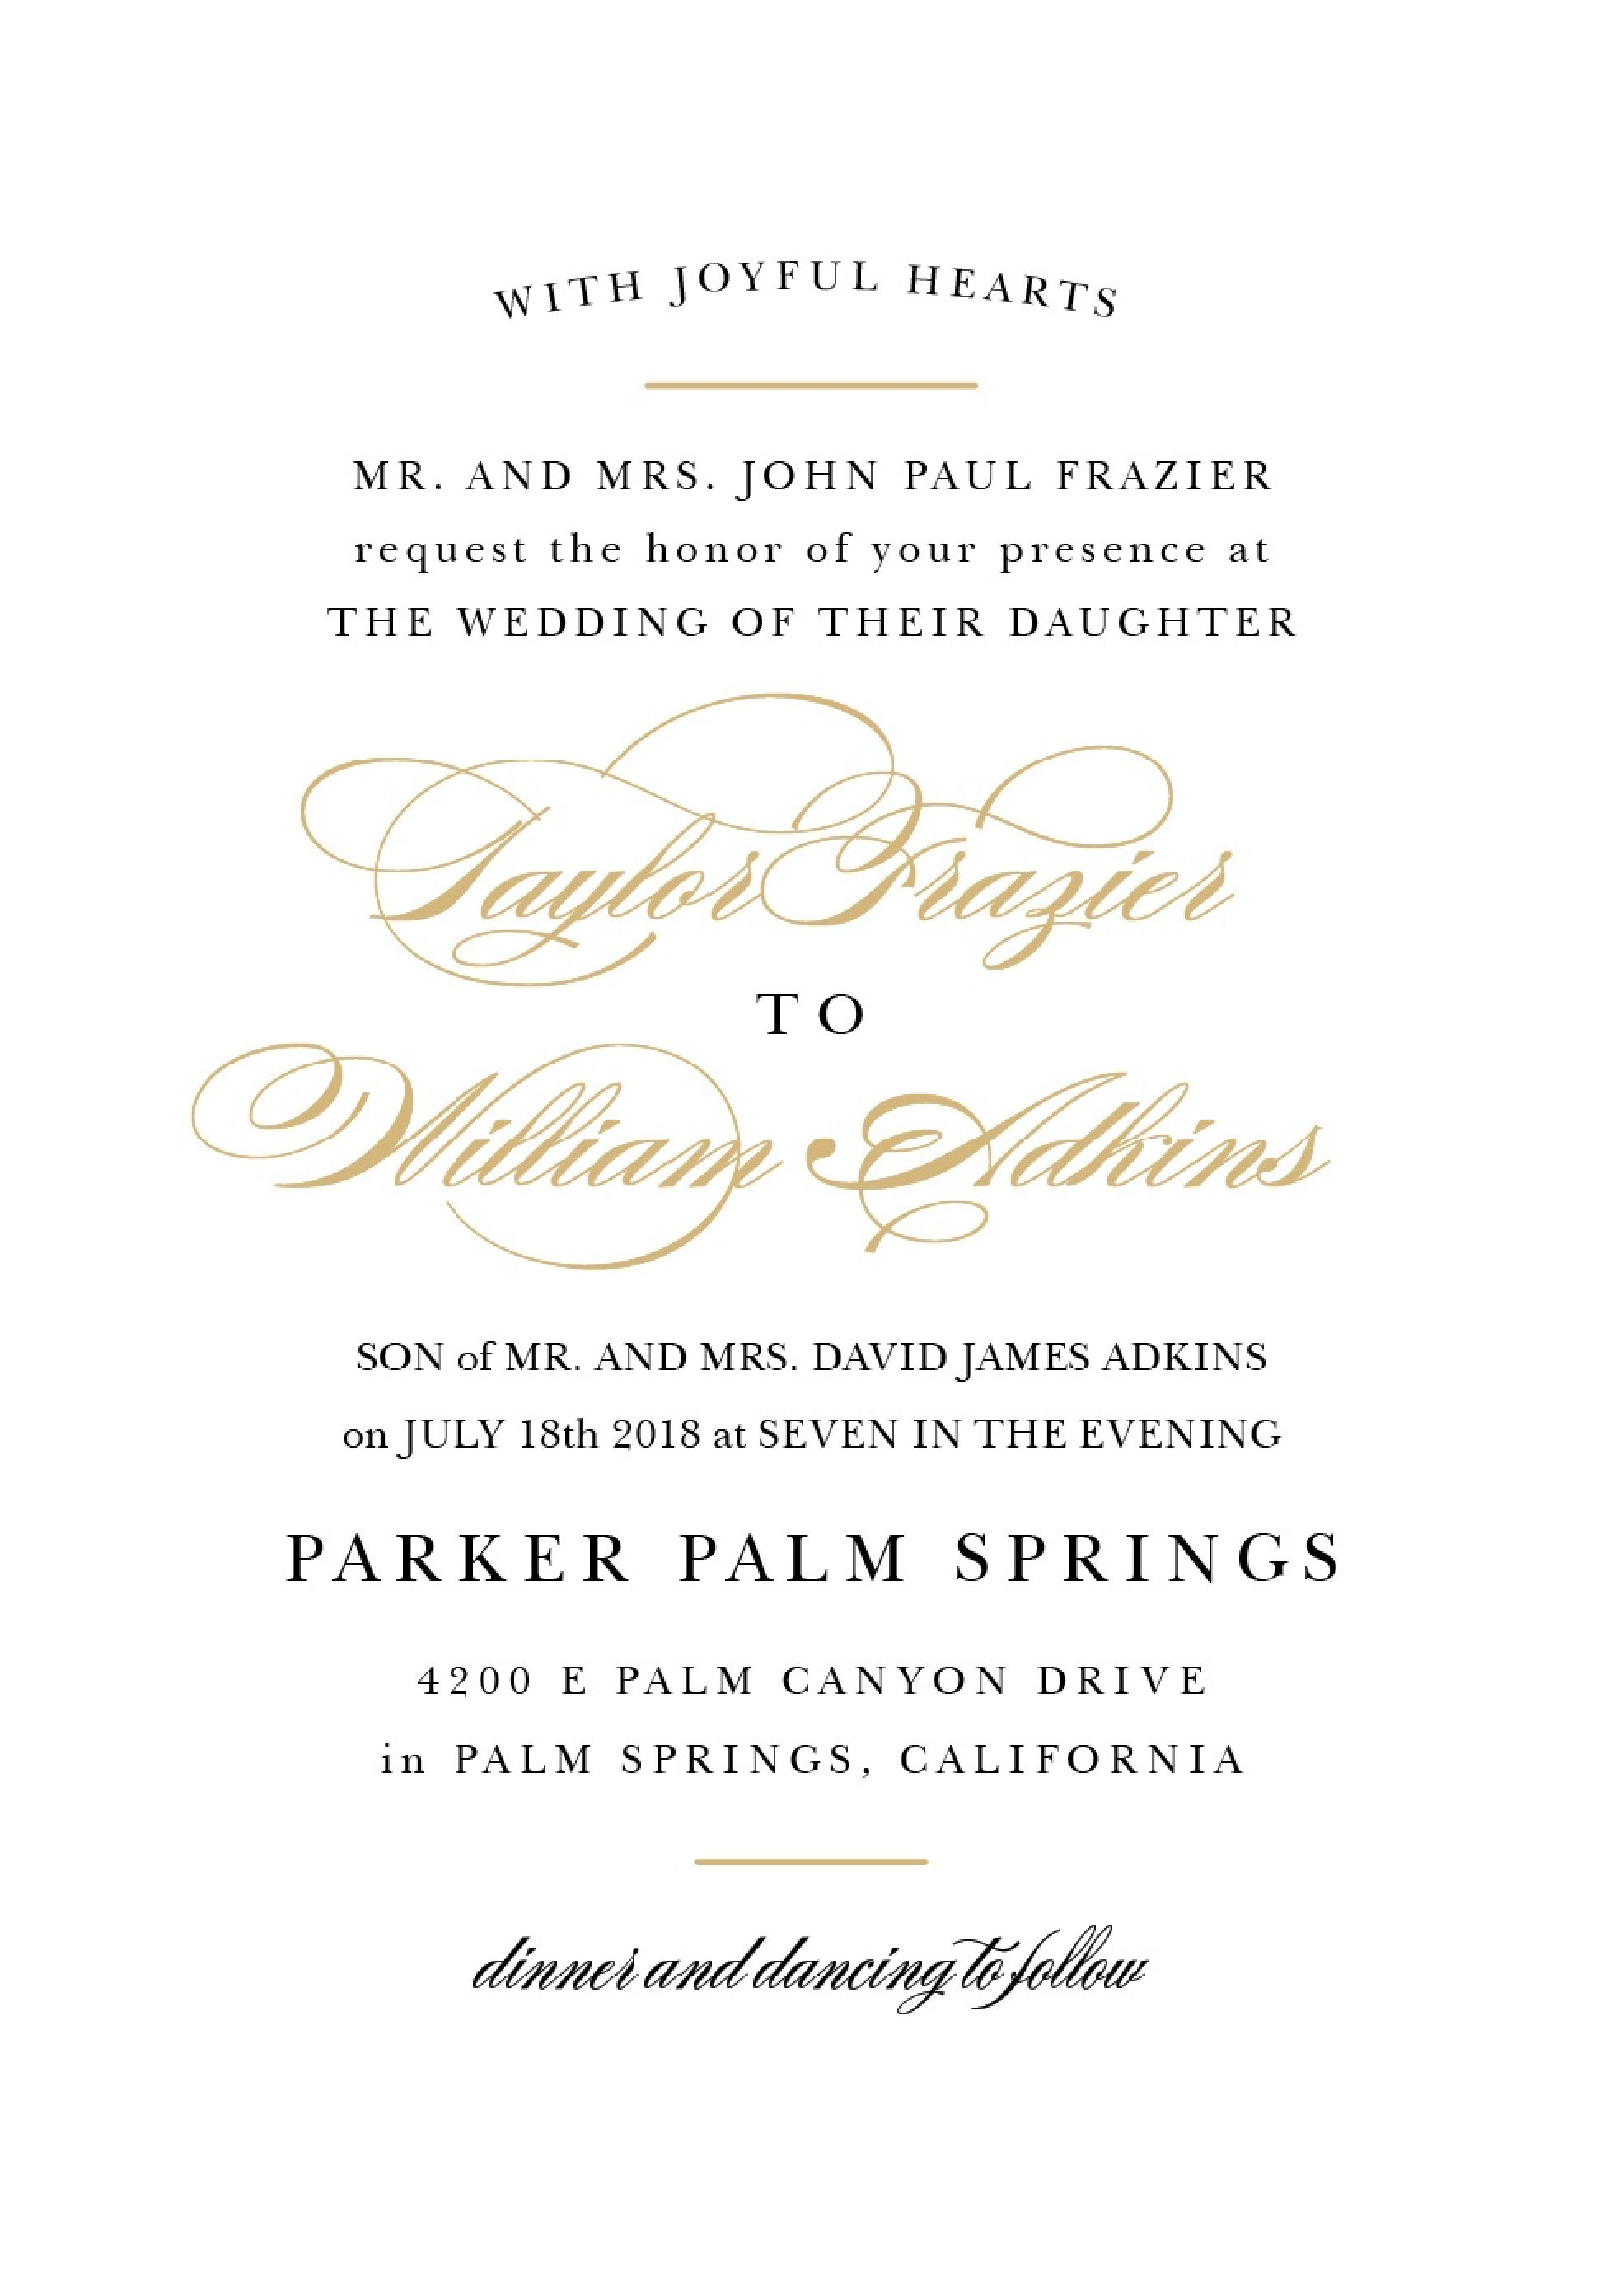 Wedding Invitation Wording Samples Regarding Sample Wedding In 2020 Sample Wedding Invitation Wording Wedding Invitation Wording Templates Wedding Invitations Examples